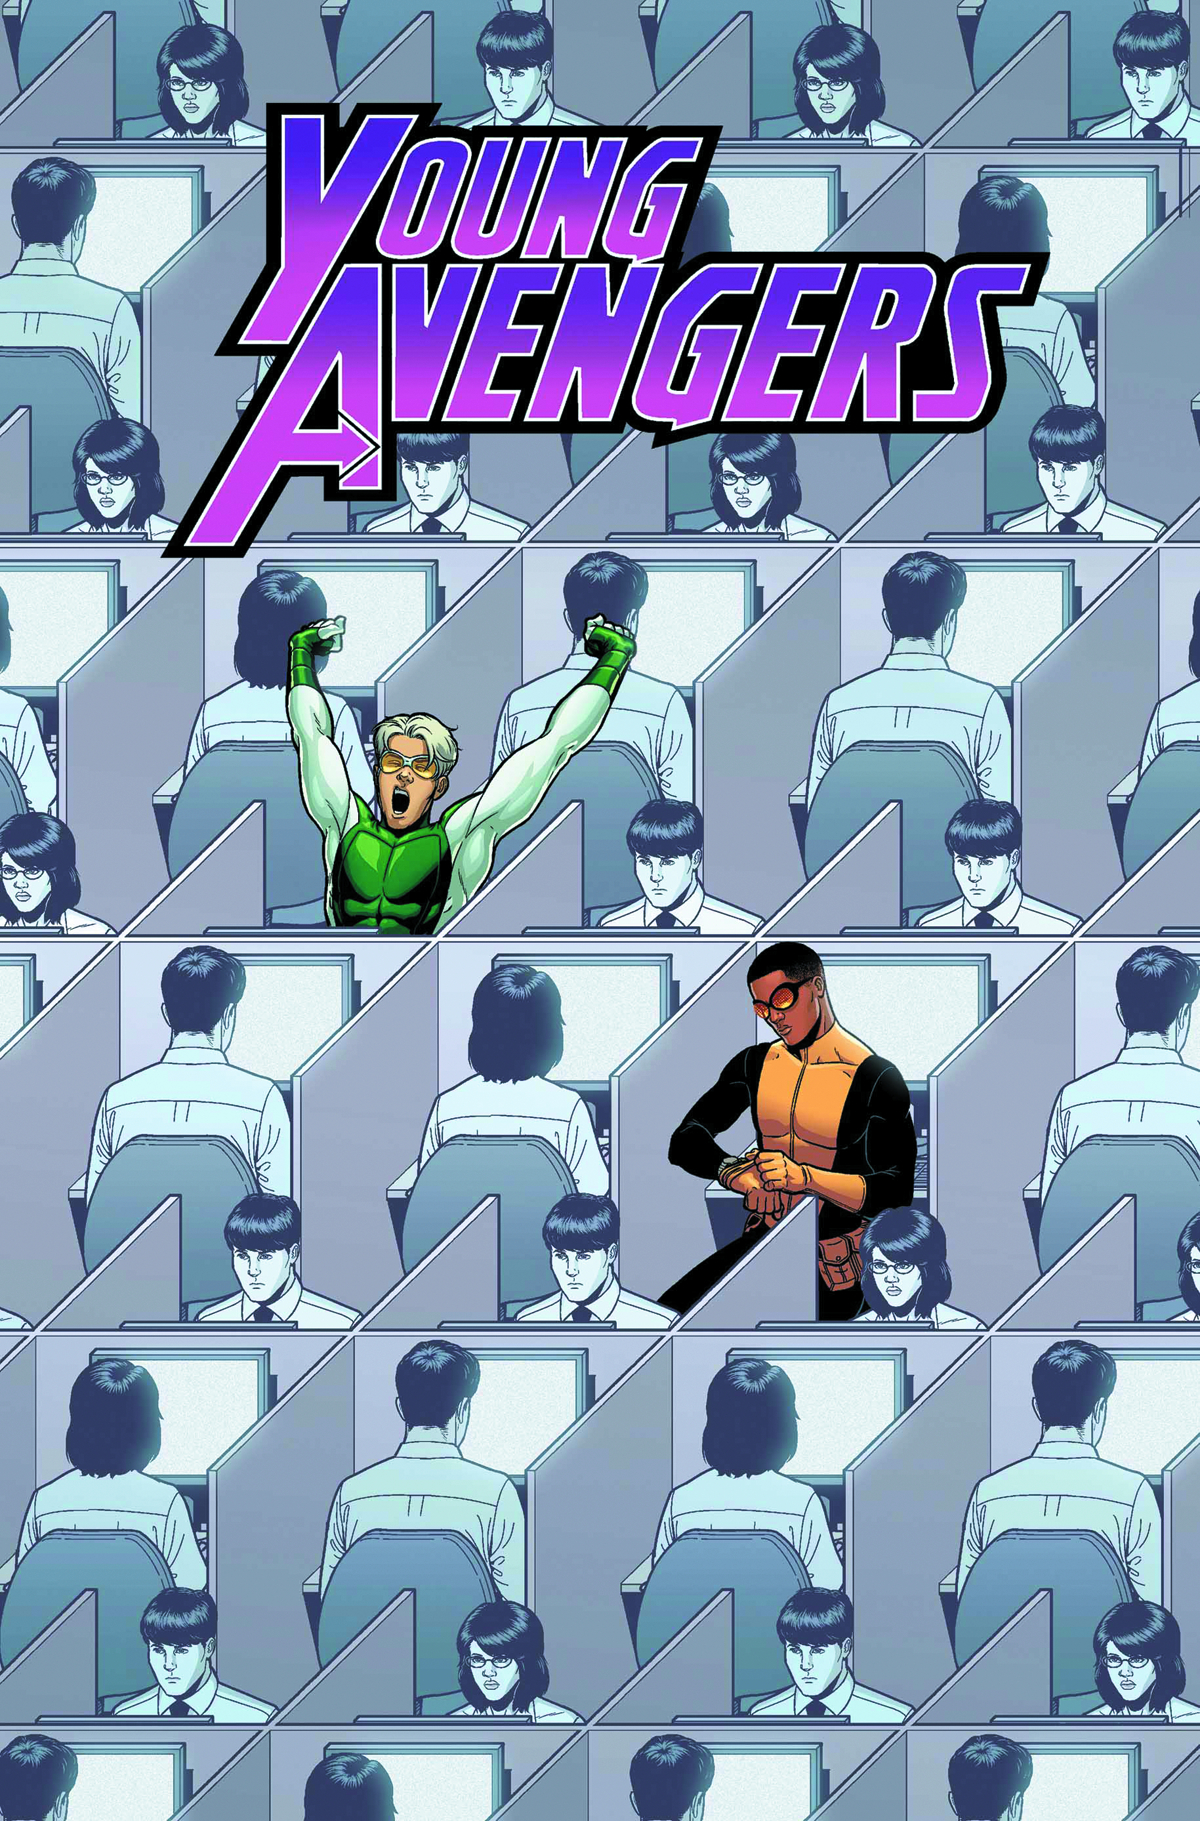 YOUNG AVENGERS #6 NOW